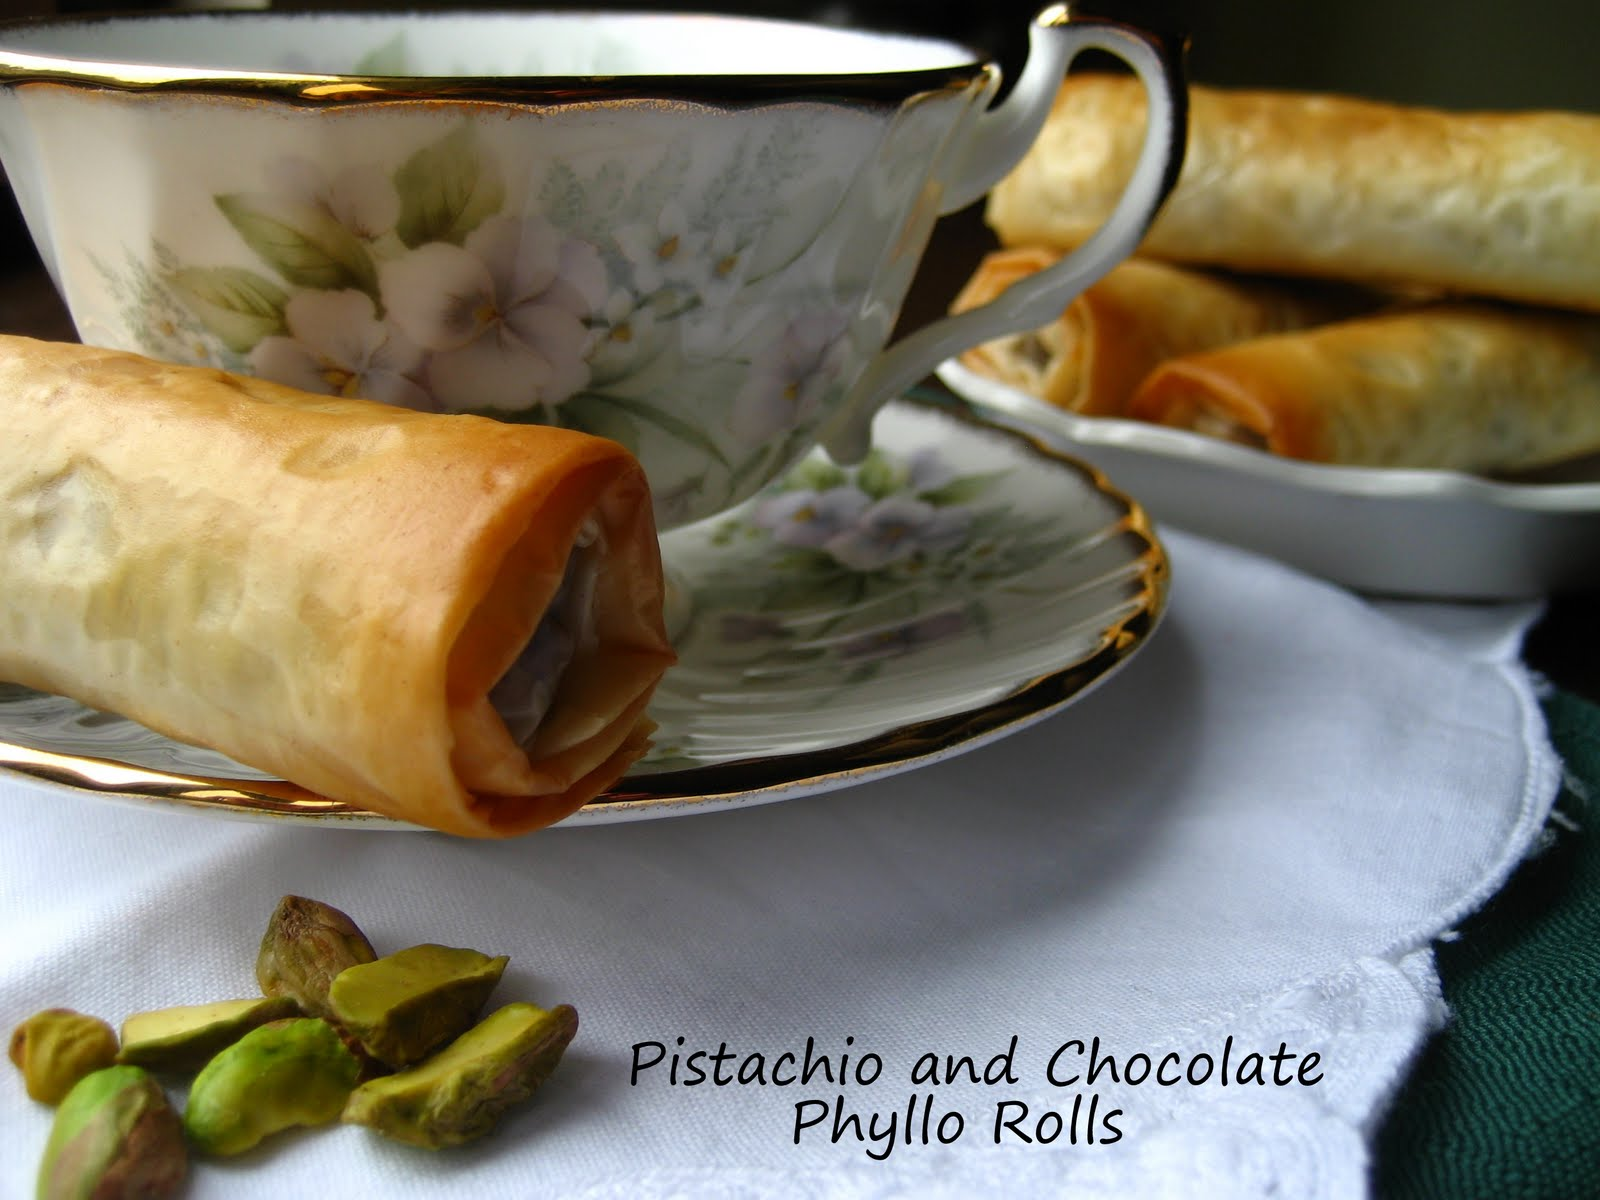 ... cookies chocolate pistachio brittle chocolate pistachio phyllo